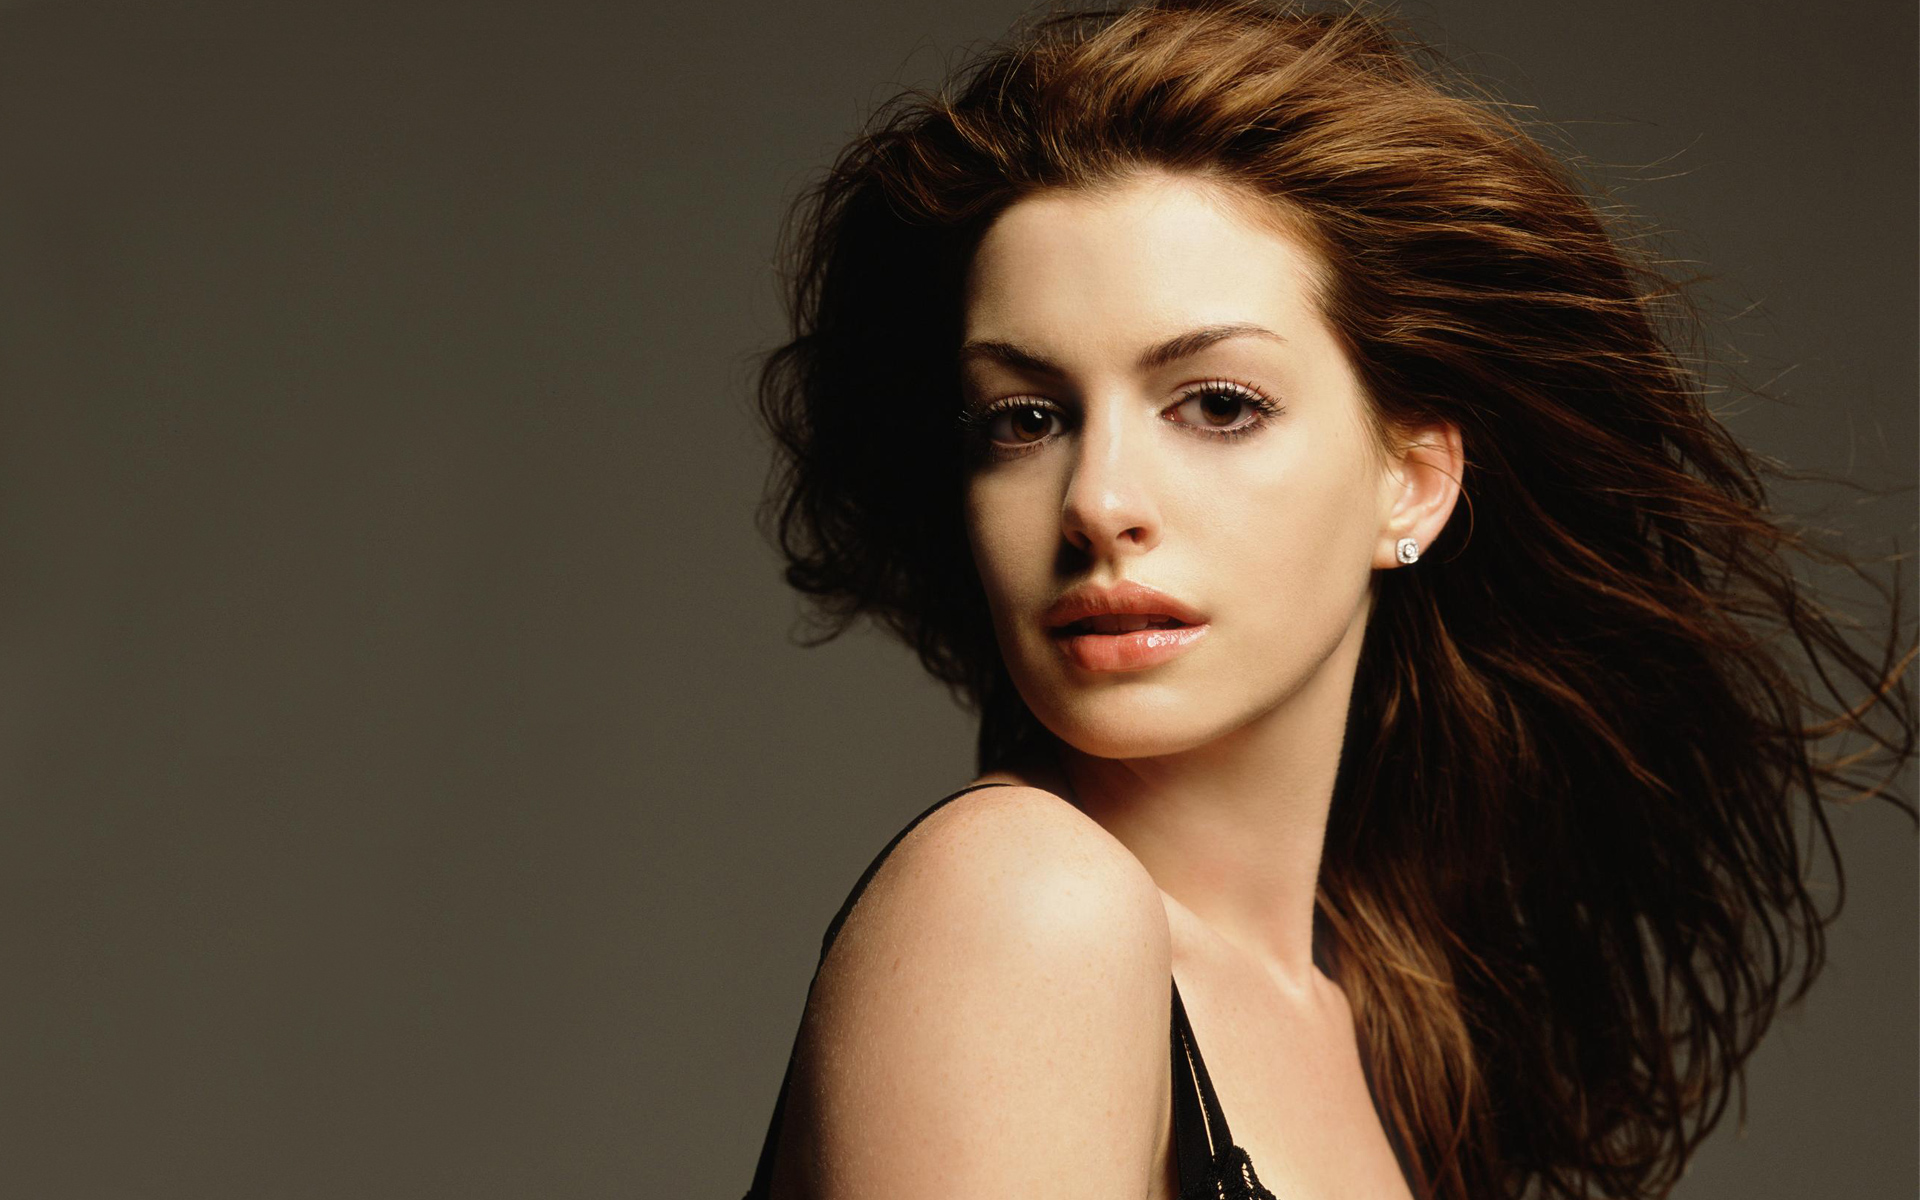 Anne Hathaway 27 wallpaper